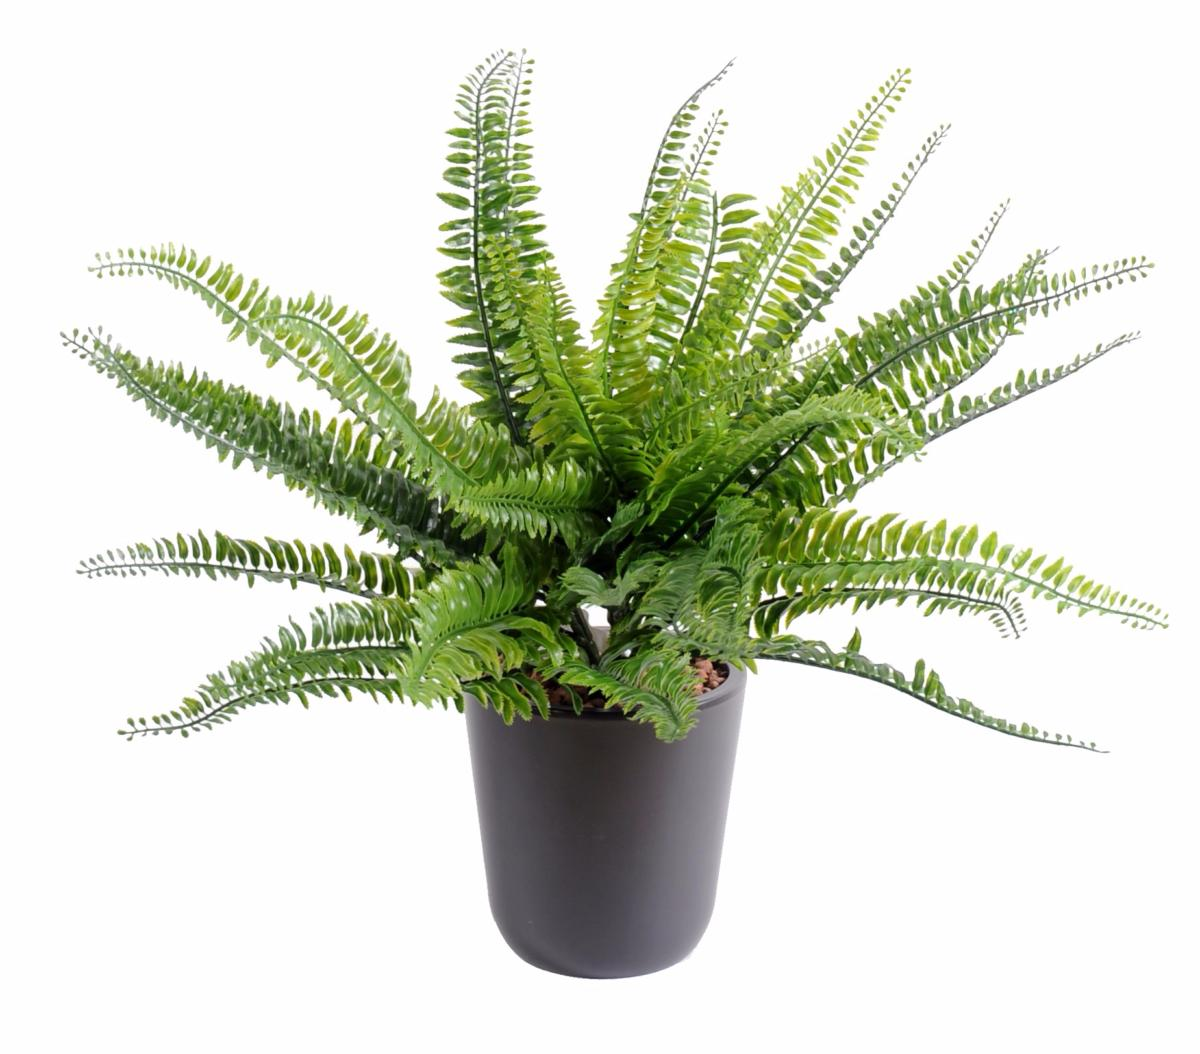 Plante artificielle foug re boston plastique en piquet for Plantes vertes exterieur en pot